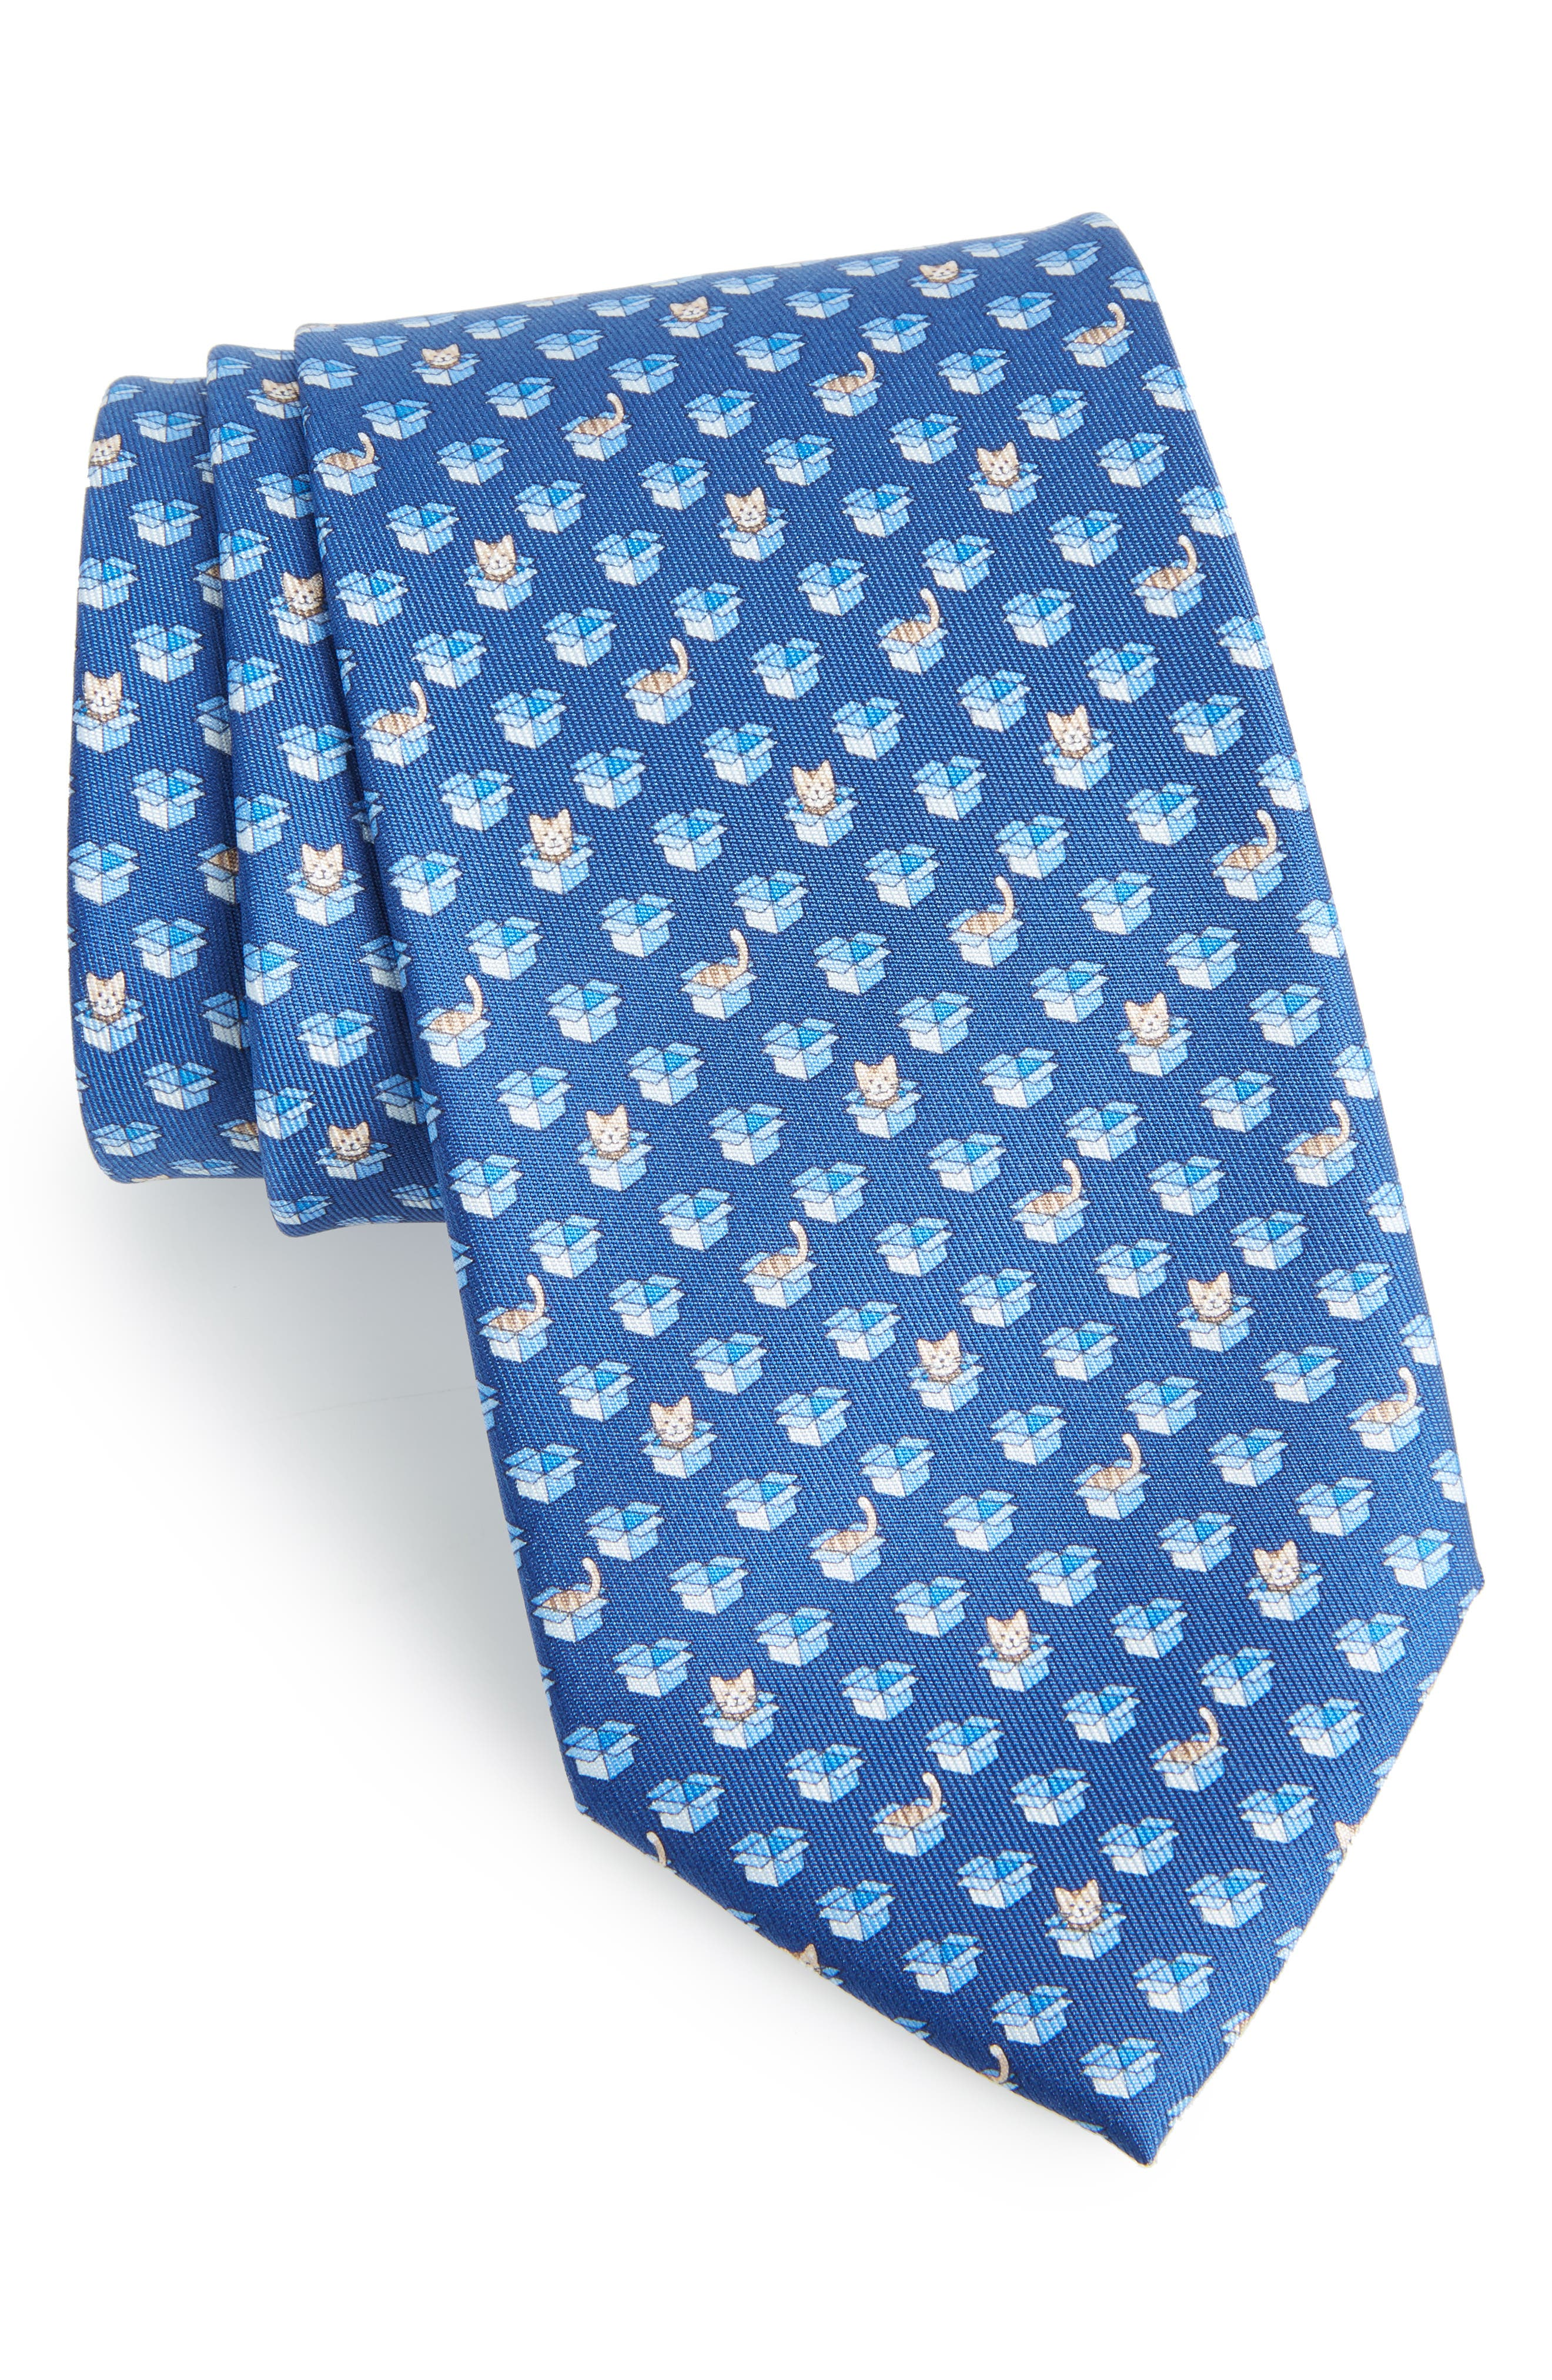 Felix Print Silk Tie,                         Main,                         color, BLUE